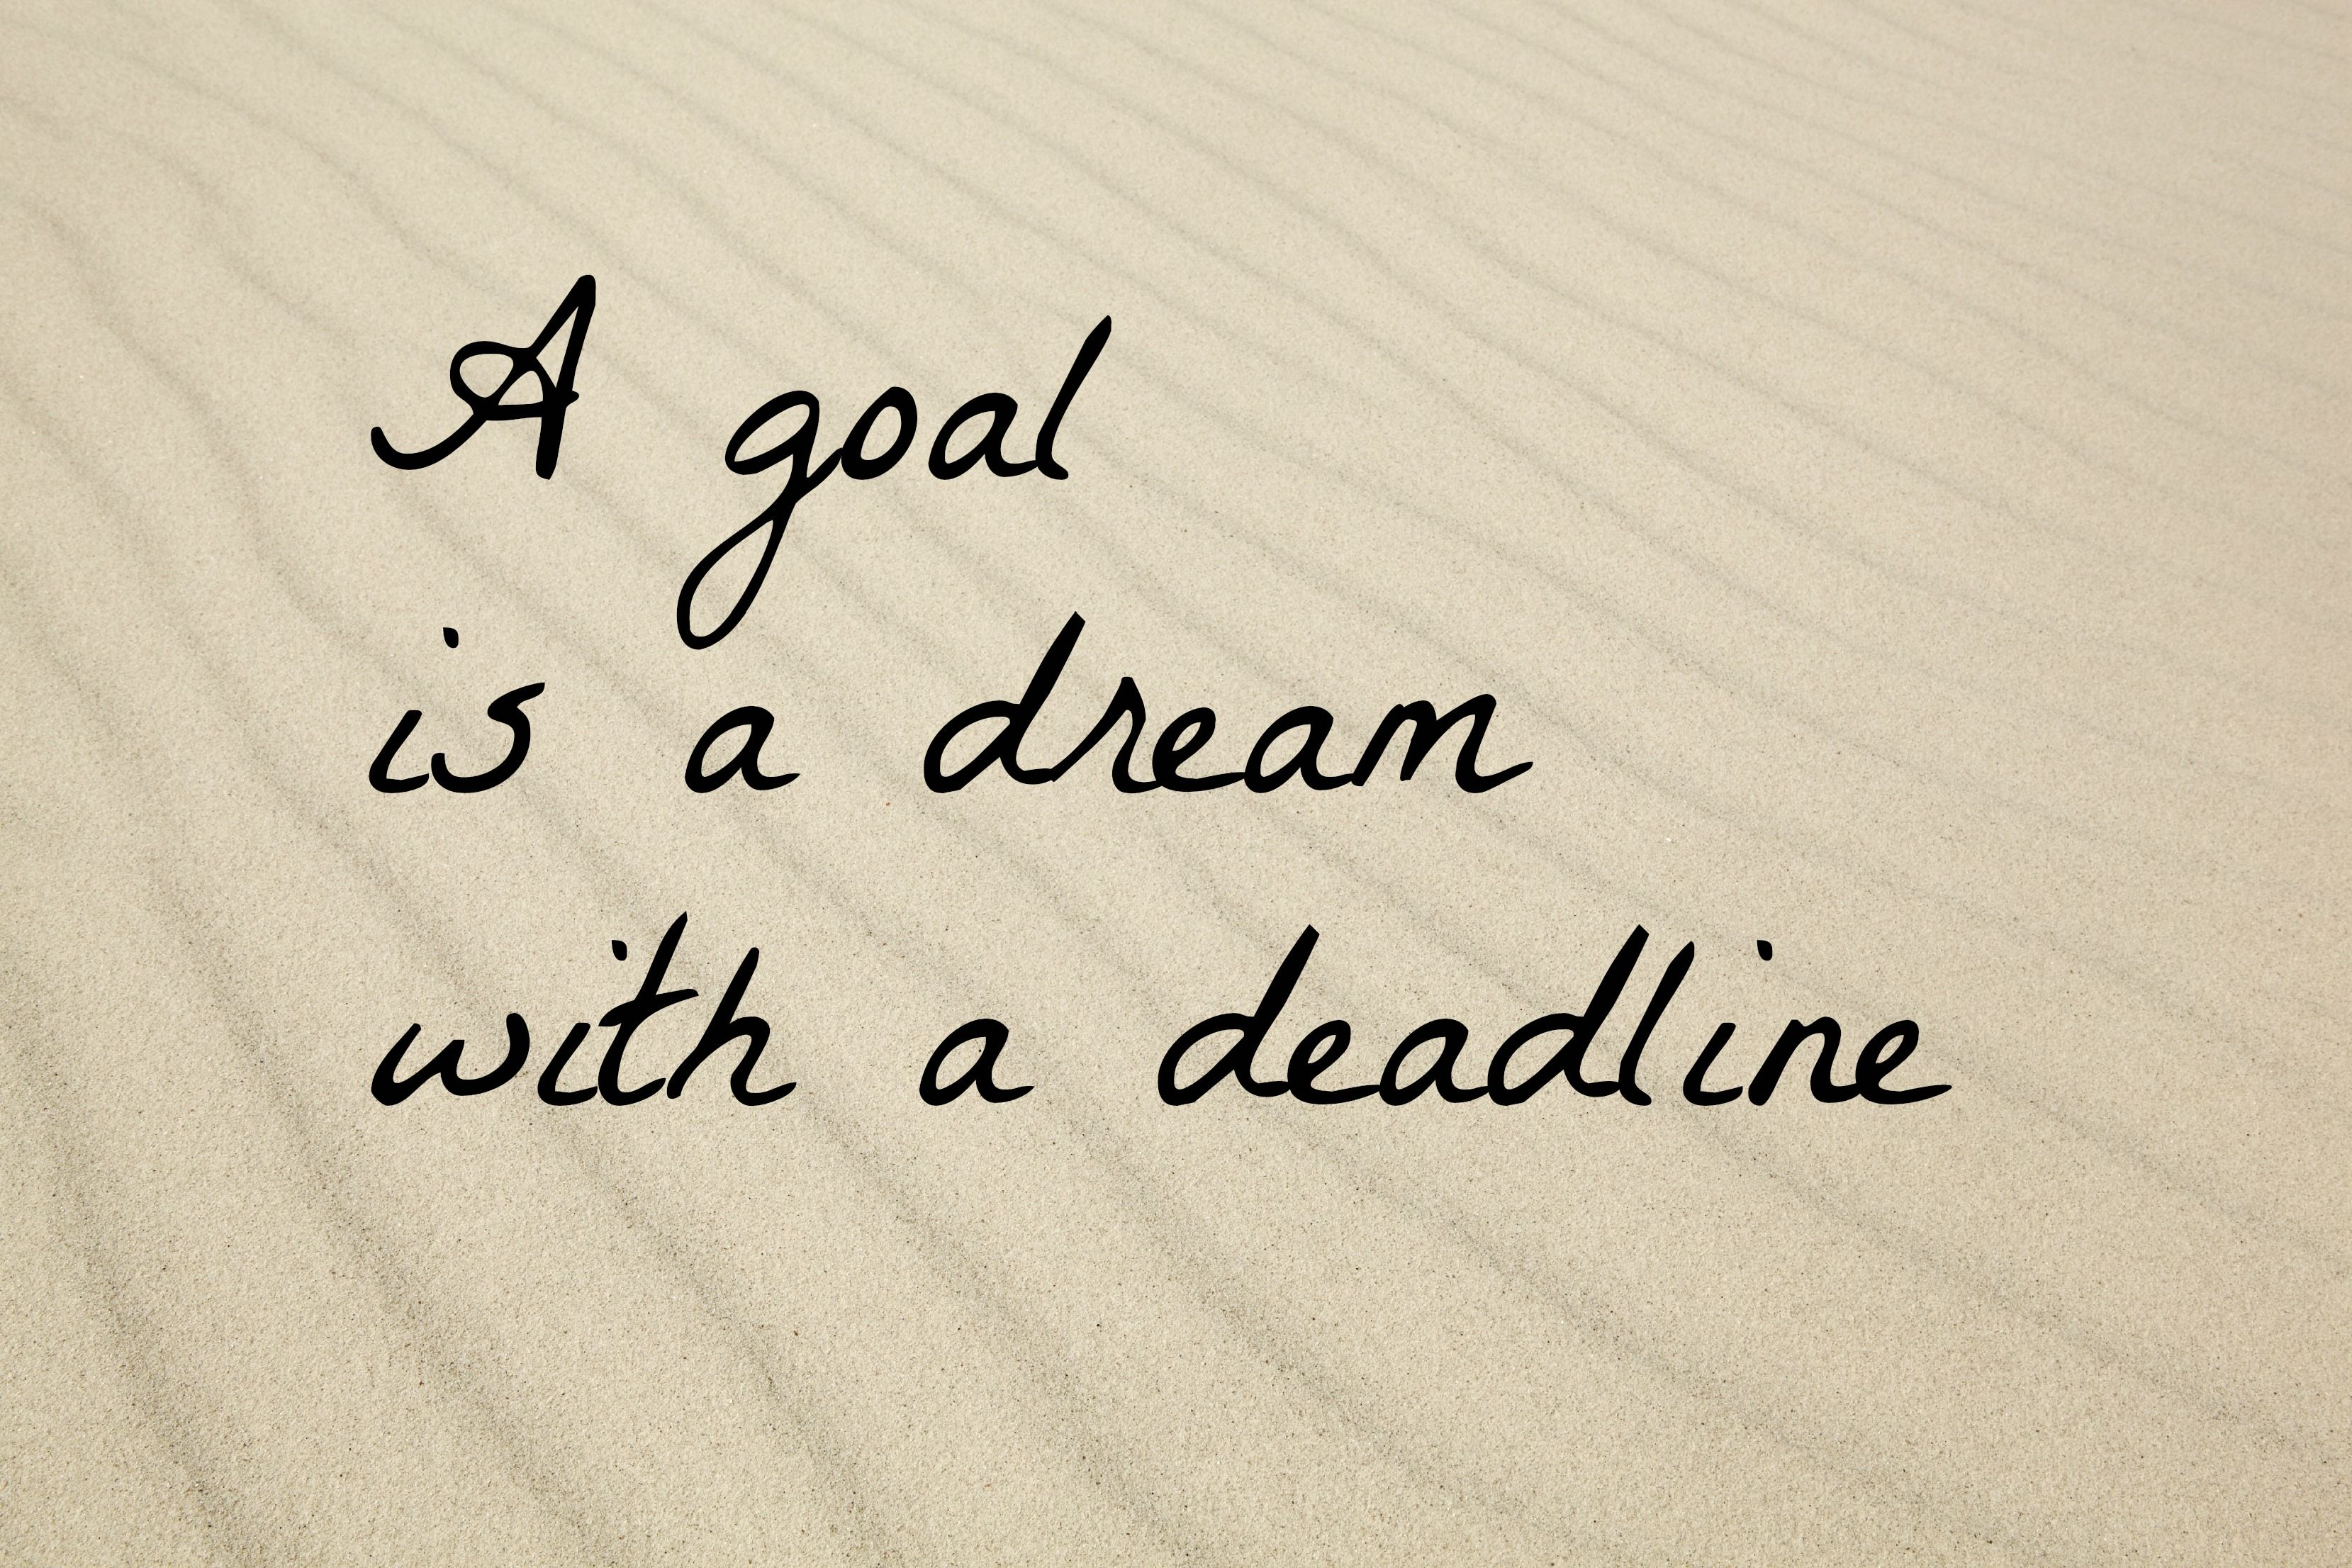 What is your goal?